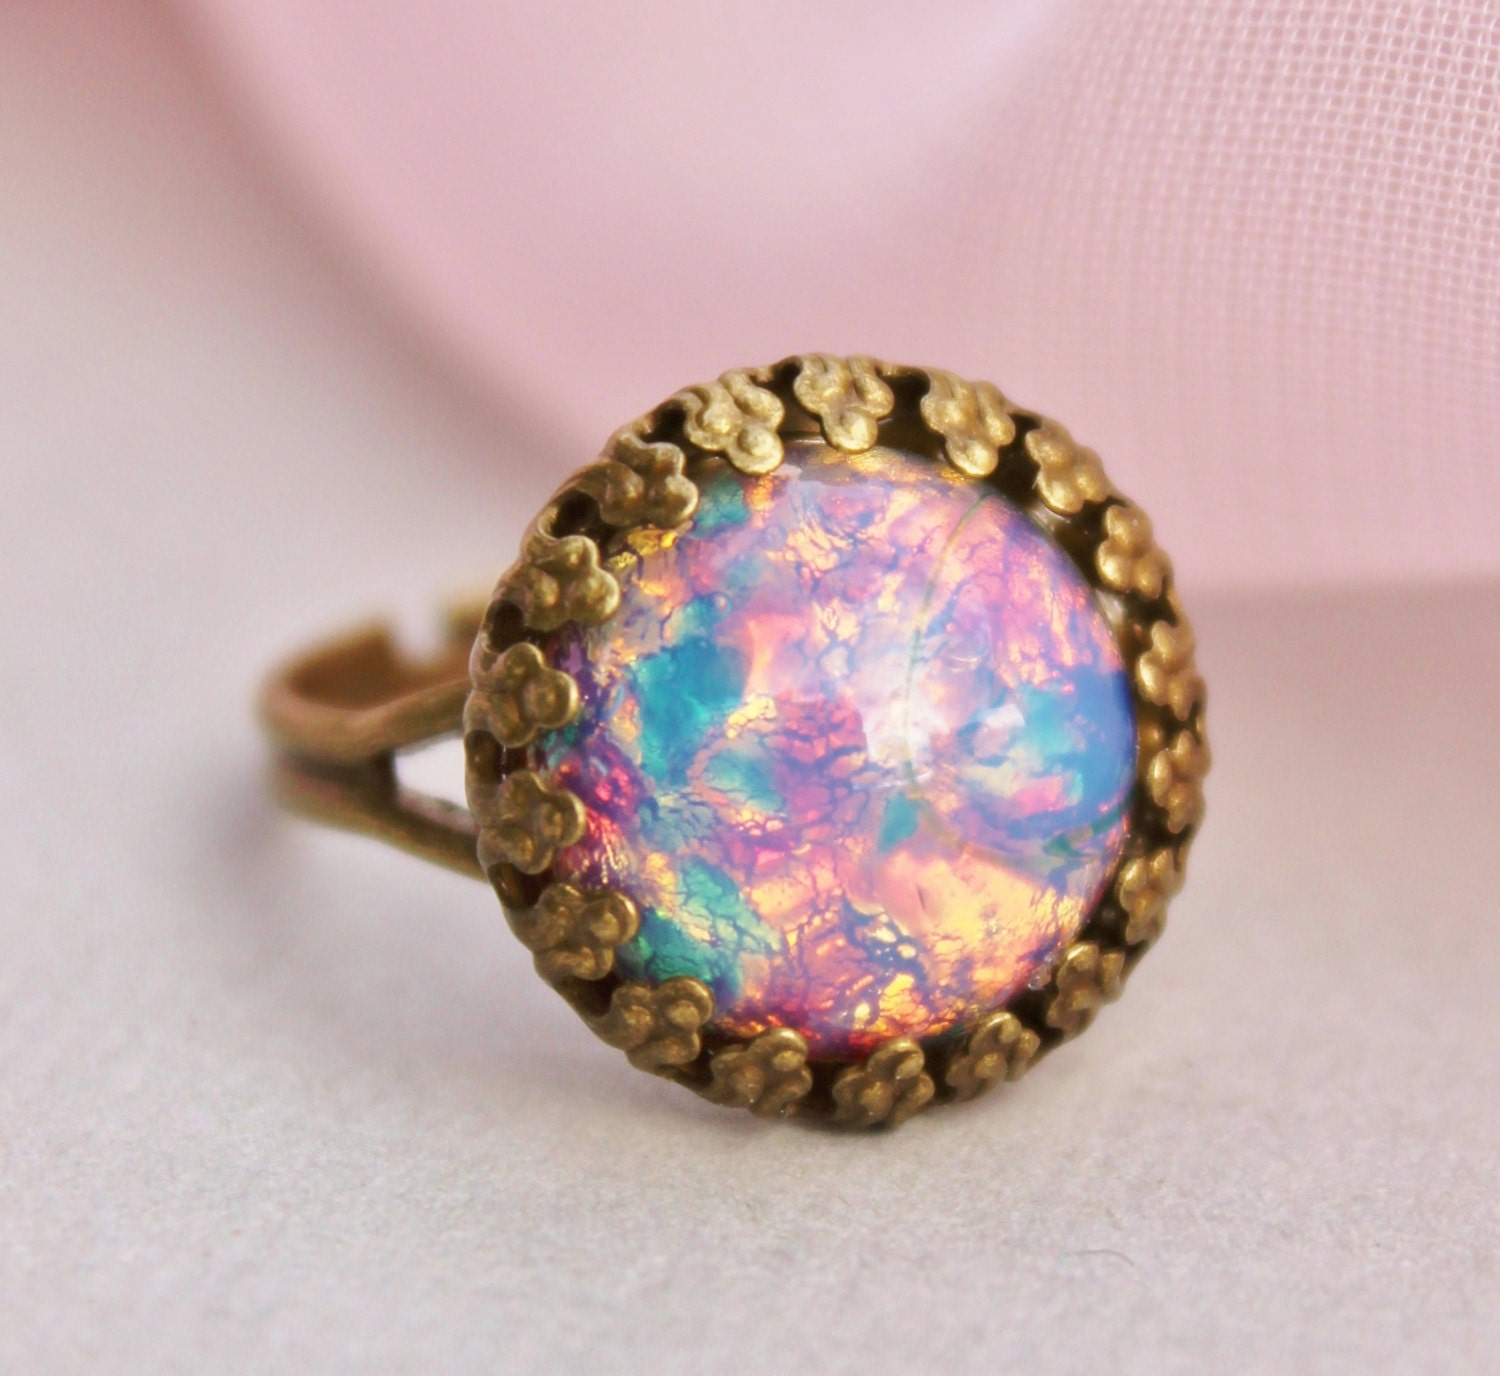 Vintage Fire Opal Ring Harlequin Glass Opal Adjustable Ring